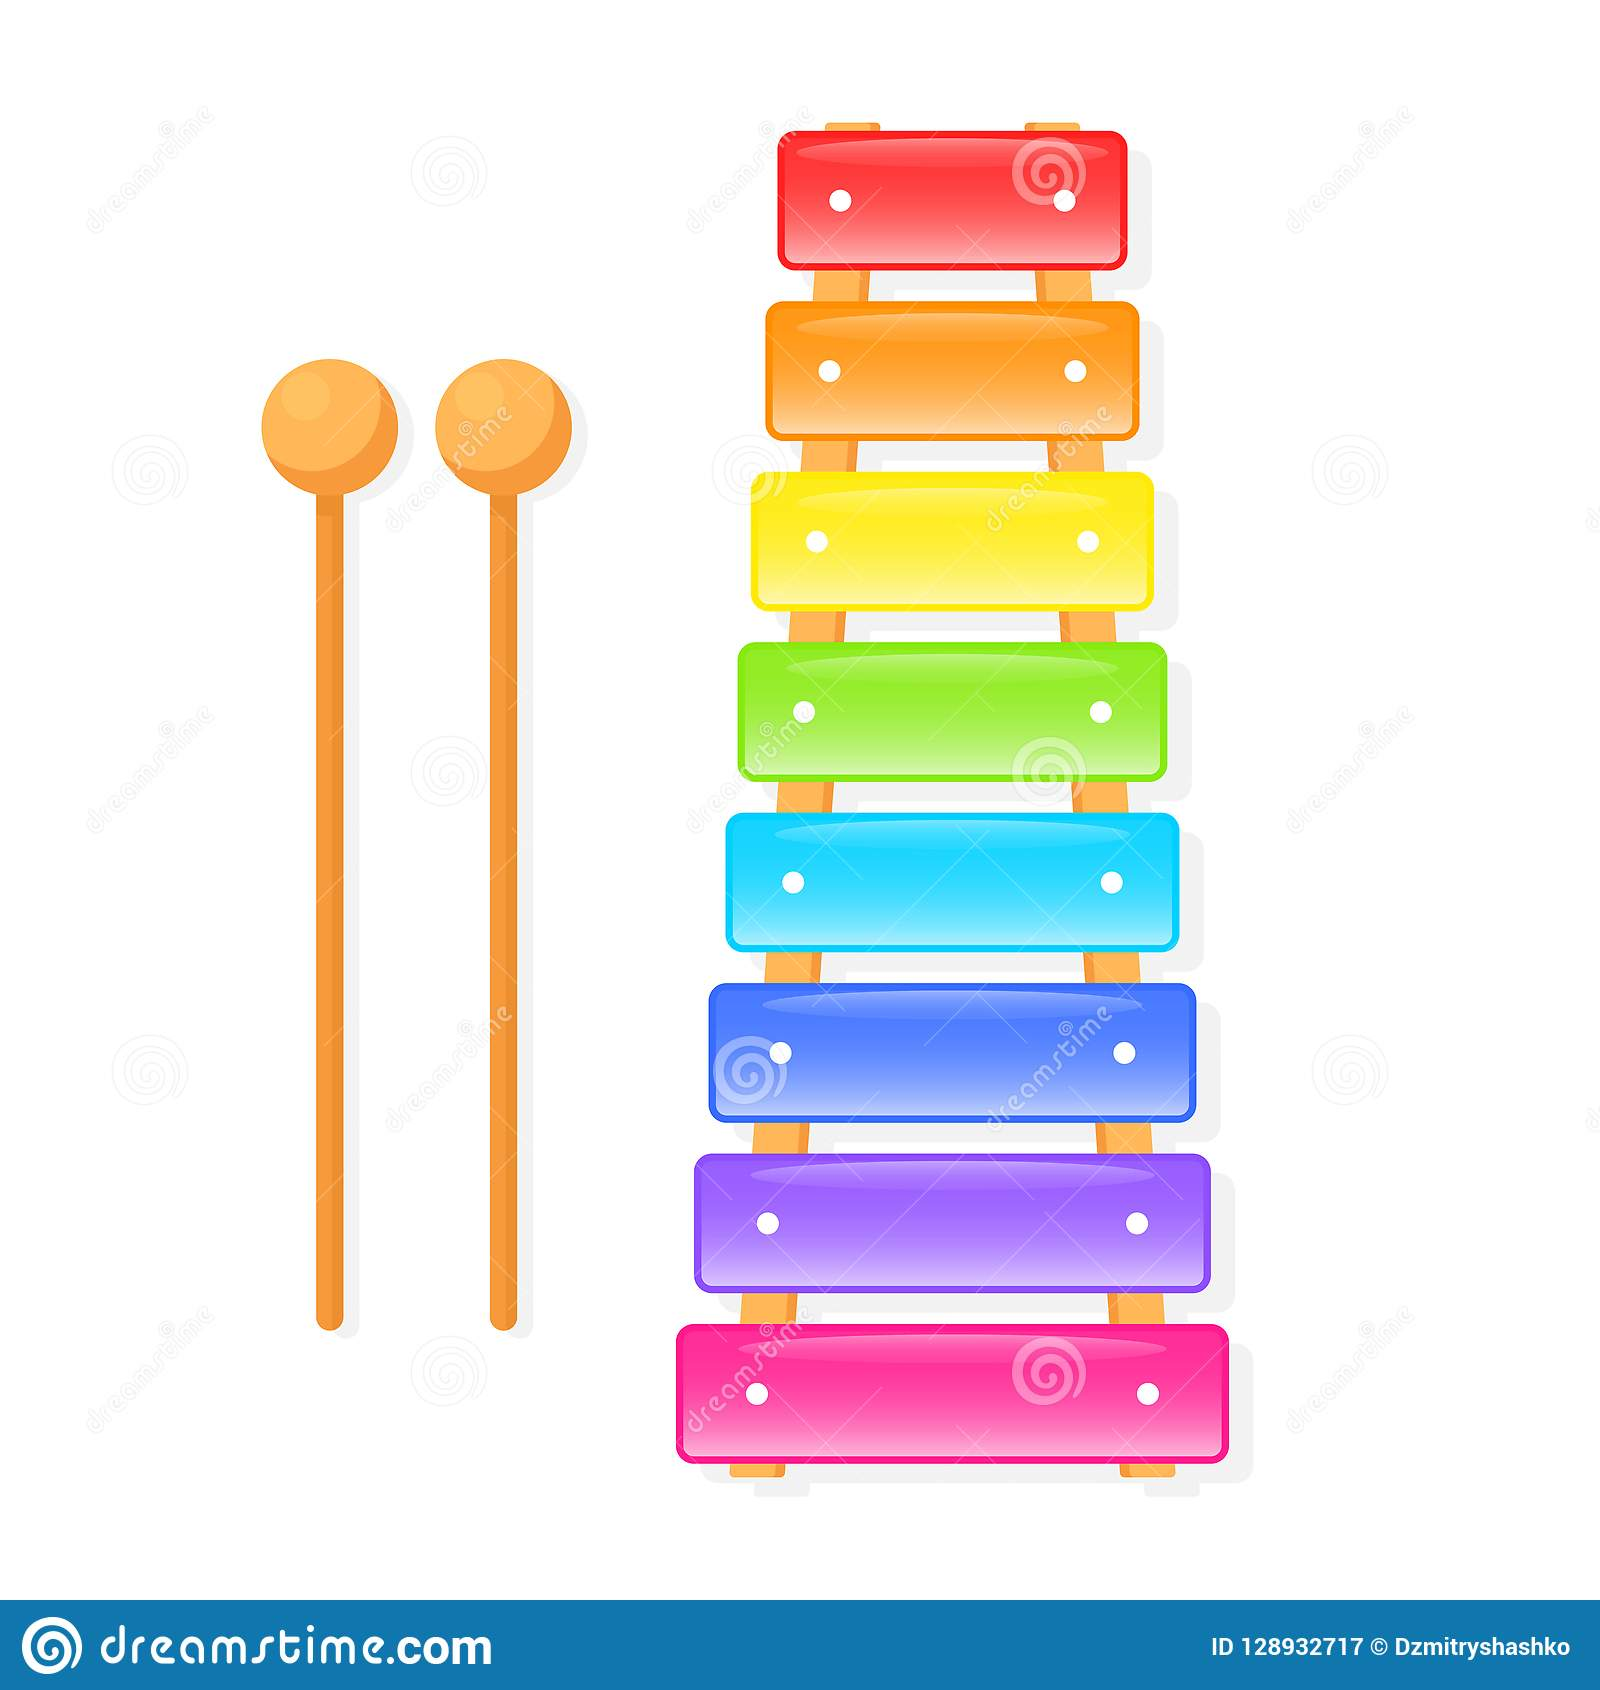 Xylophone colorful icon stock vector. Illustration of drawing.